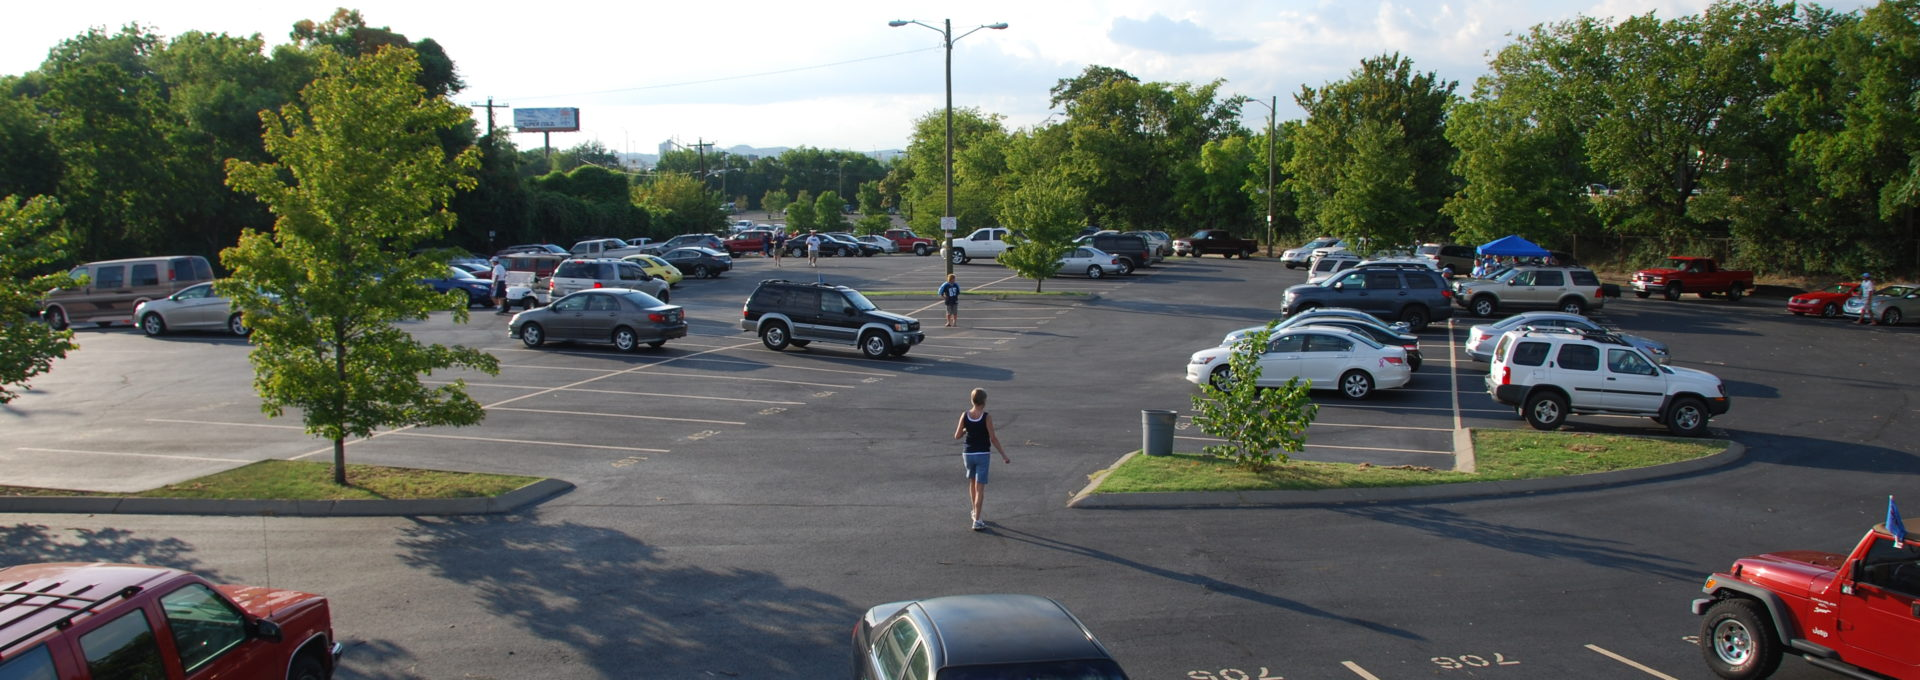 Overview of parking lot